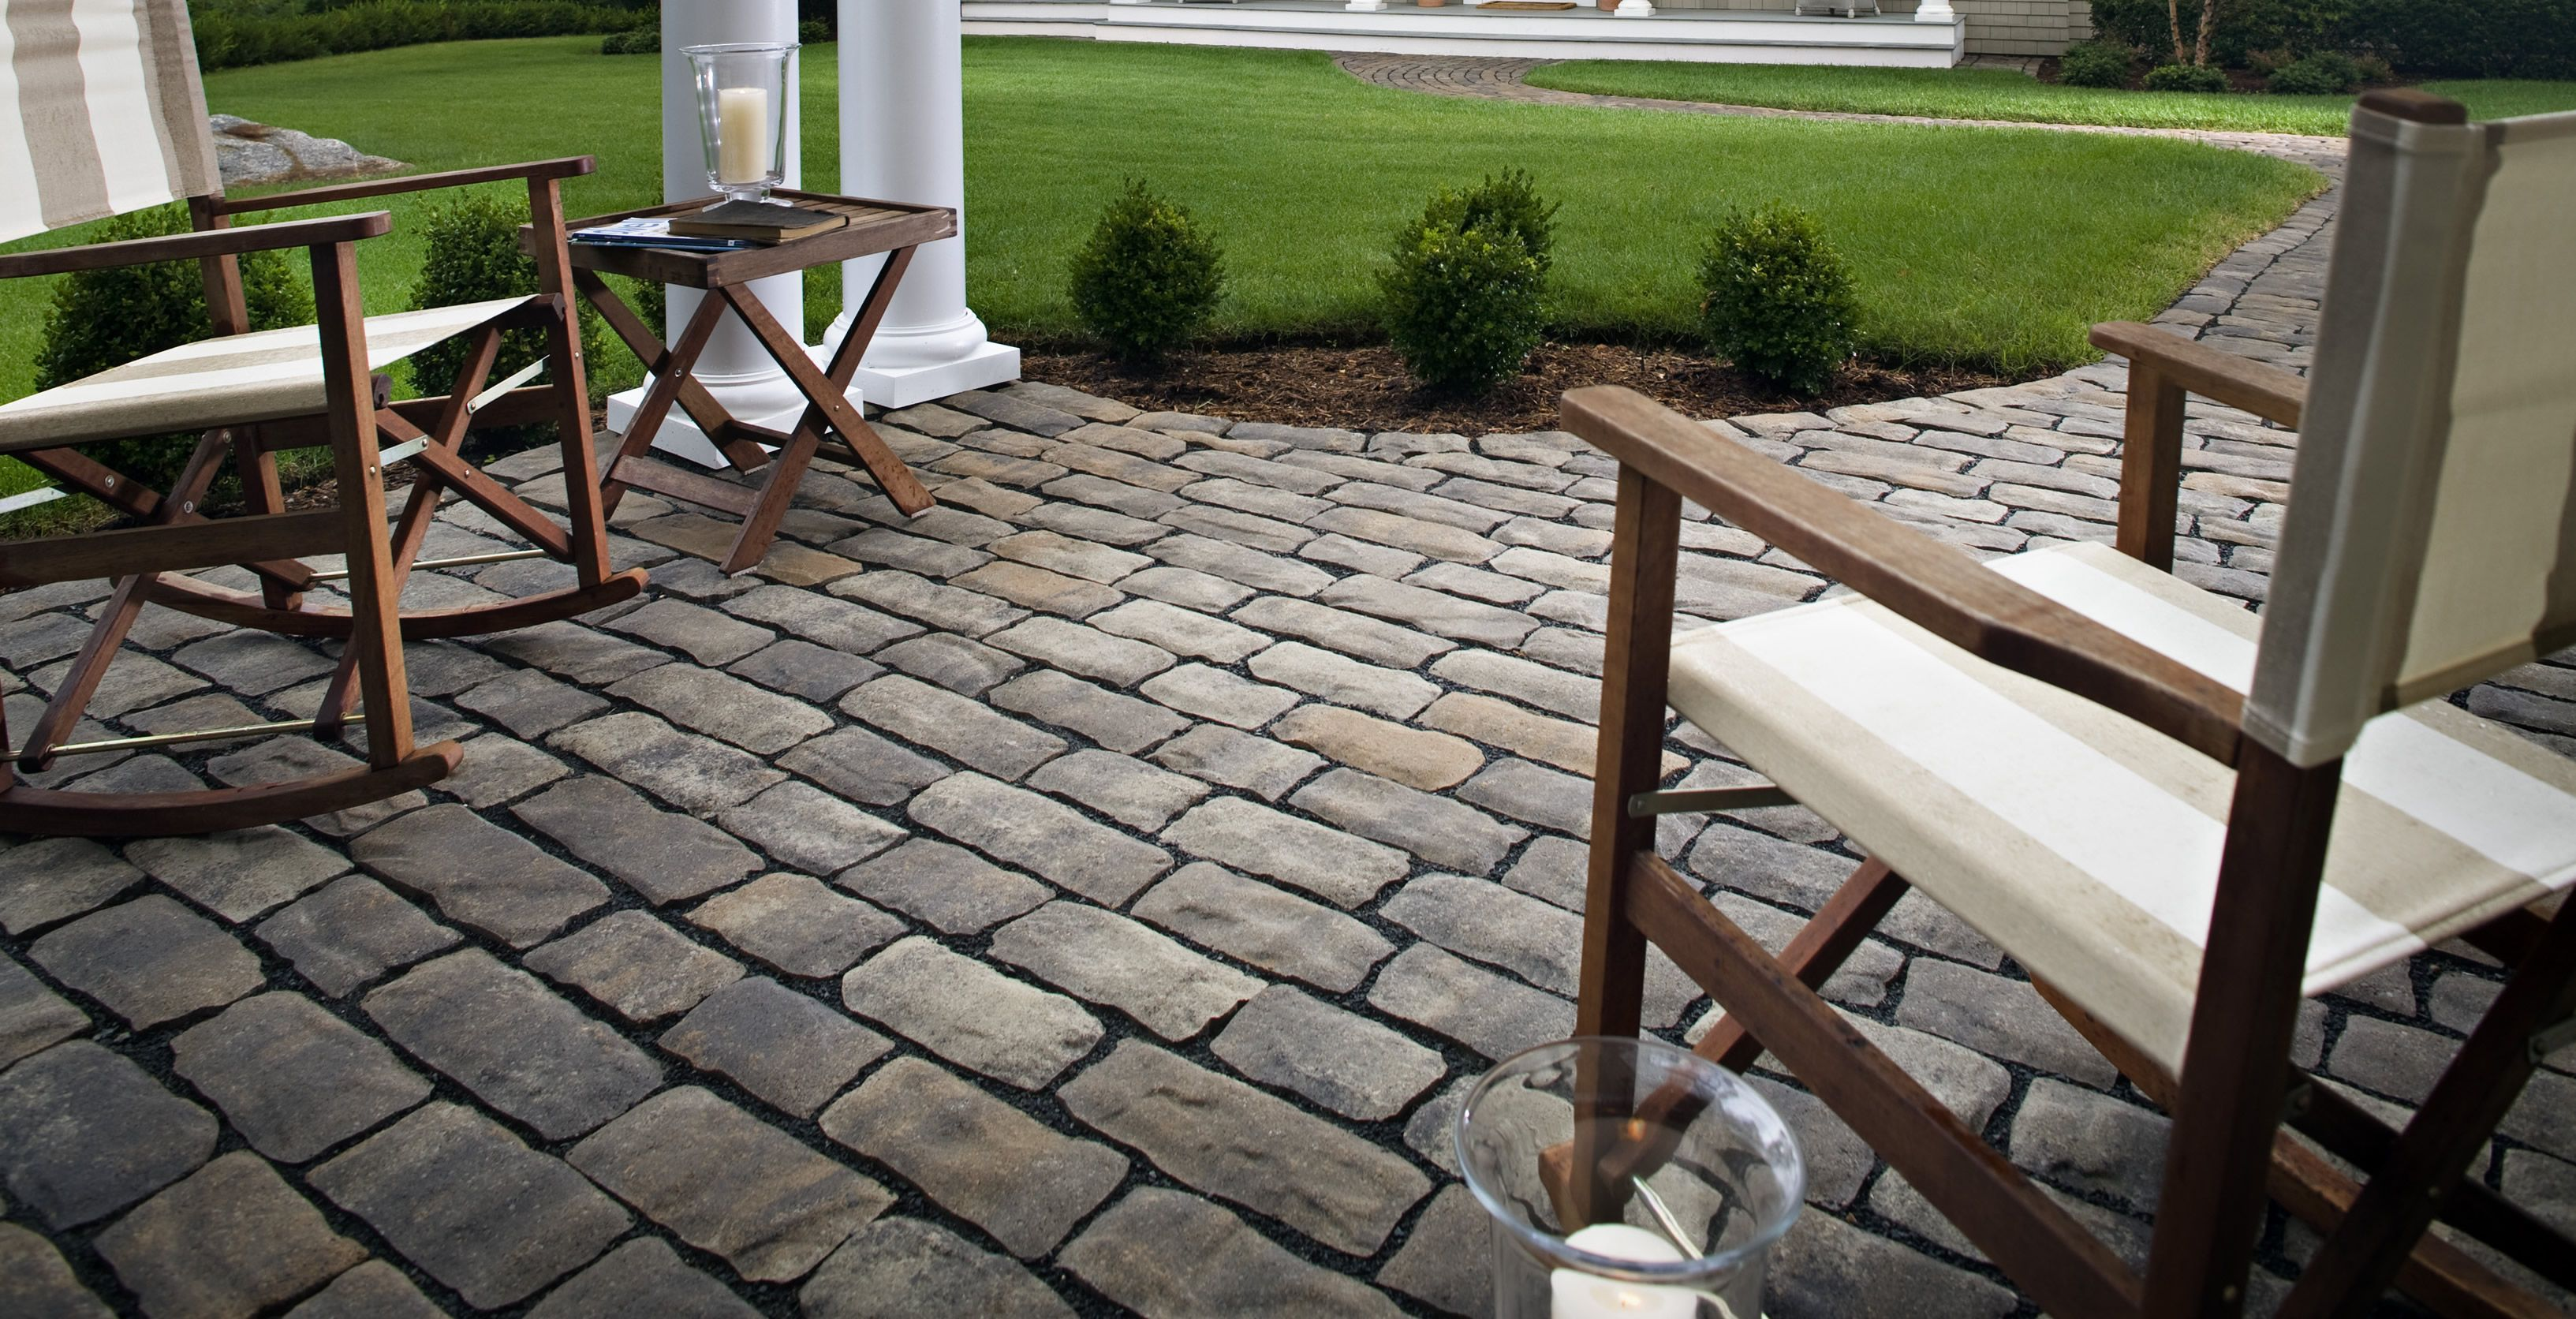 Charming Patio Design Ideas With Pavers | Cobblestone Paver Patio San Diego